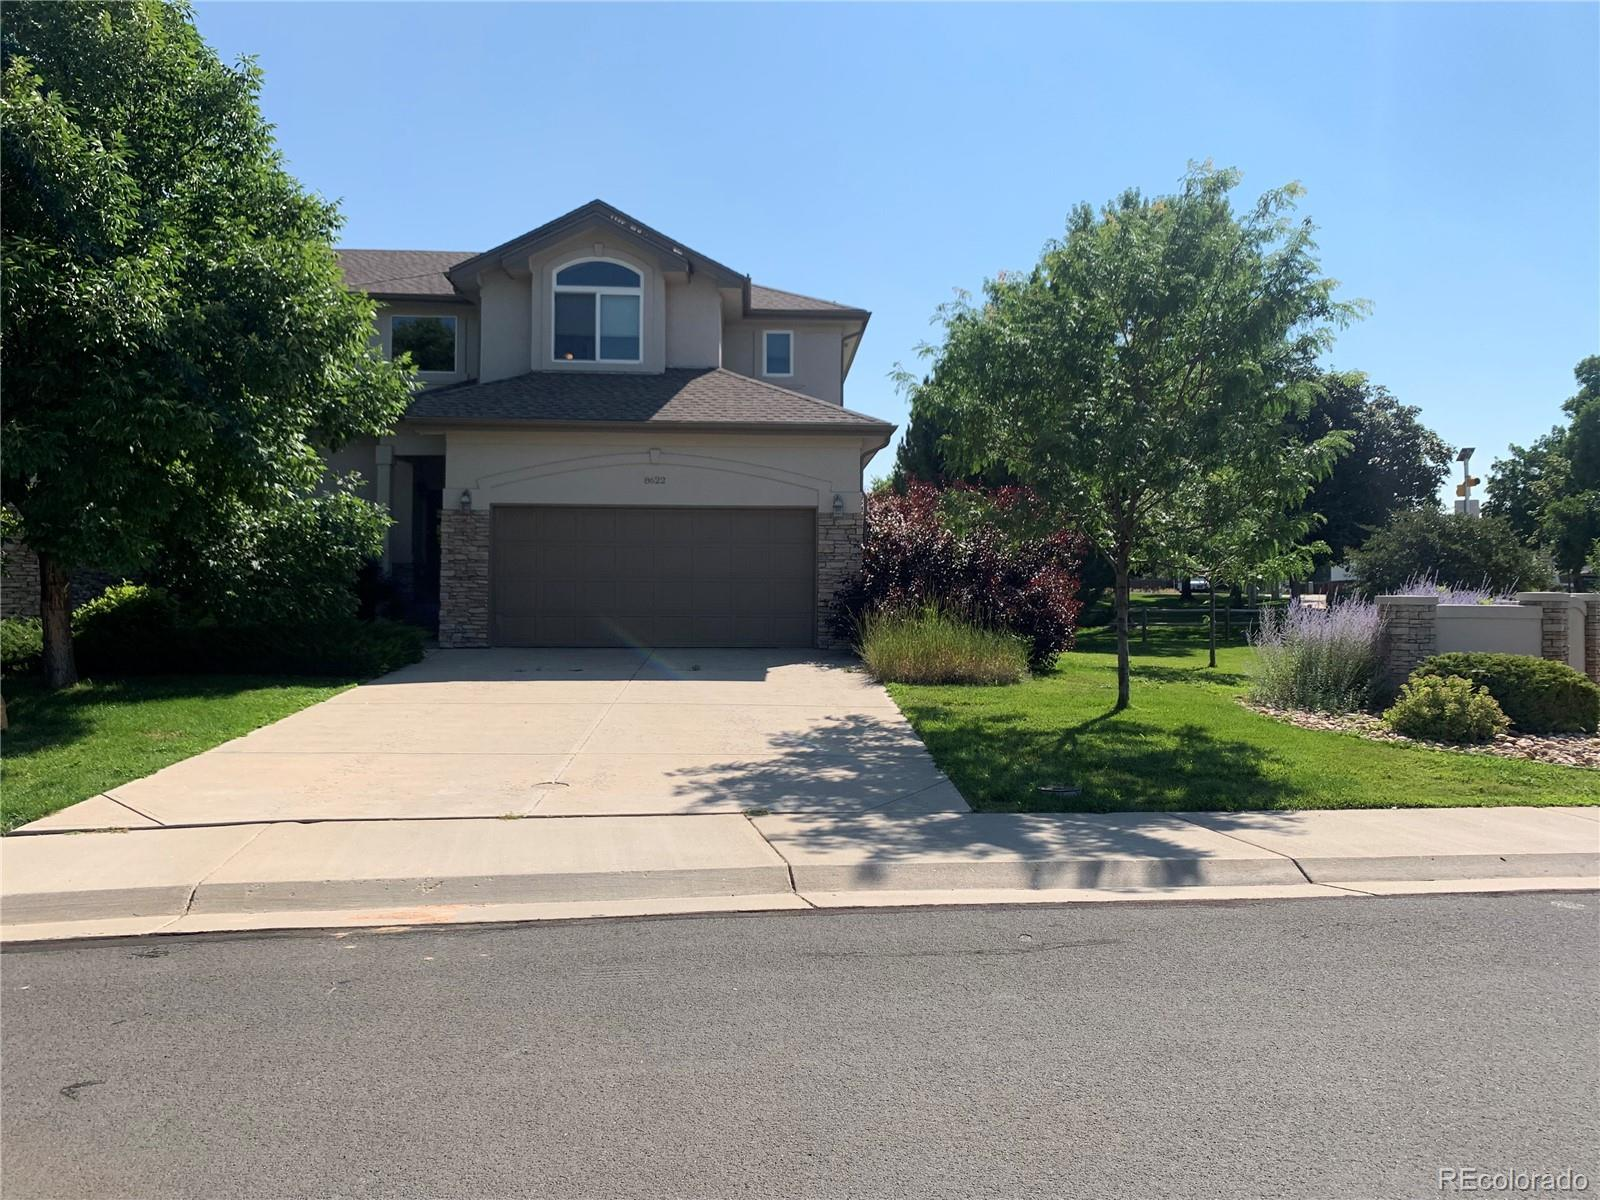 8622 W 93rd Court, Westminster, CO 80021 - #: 6046987